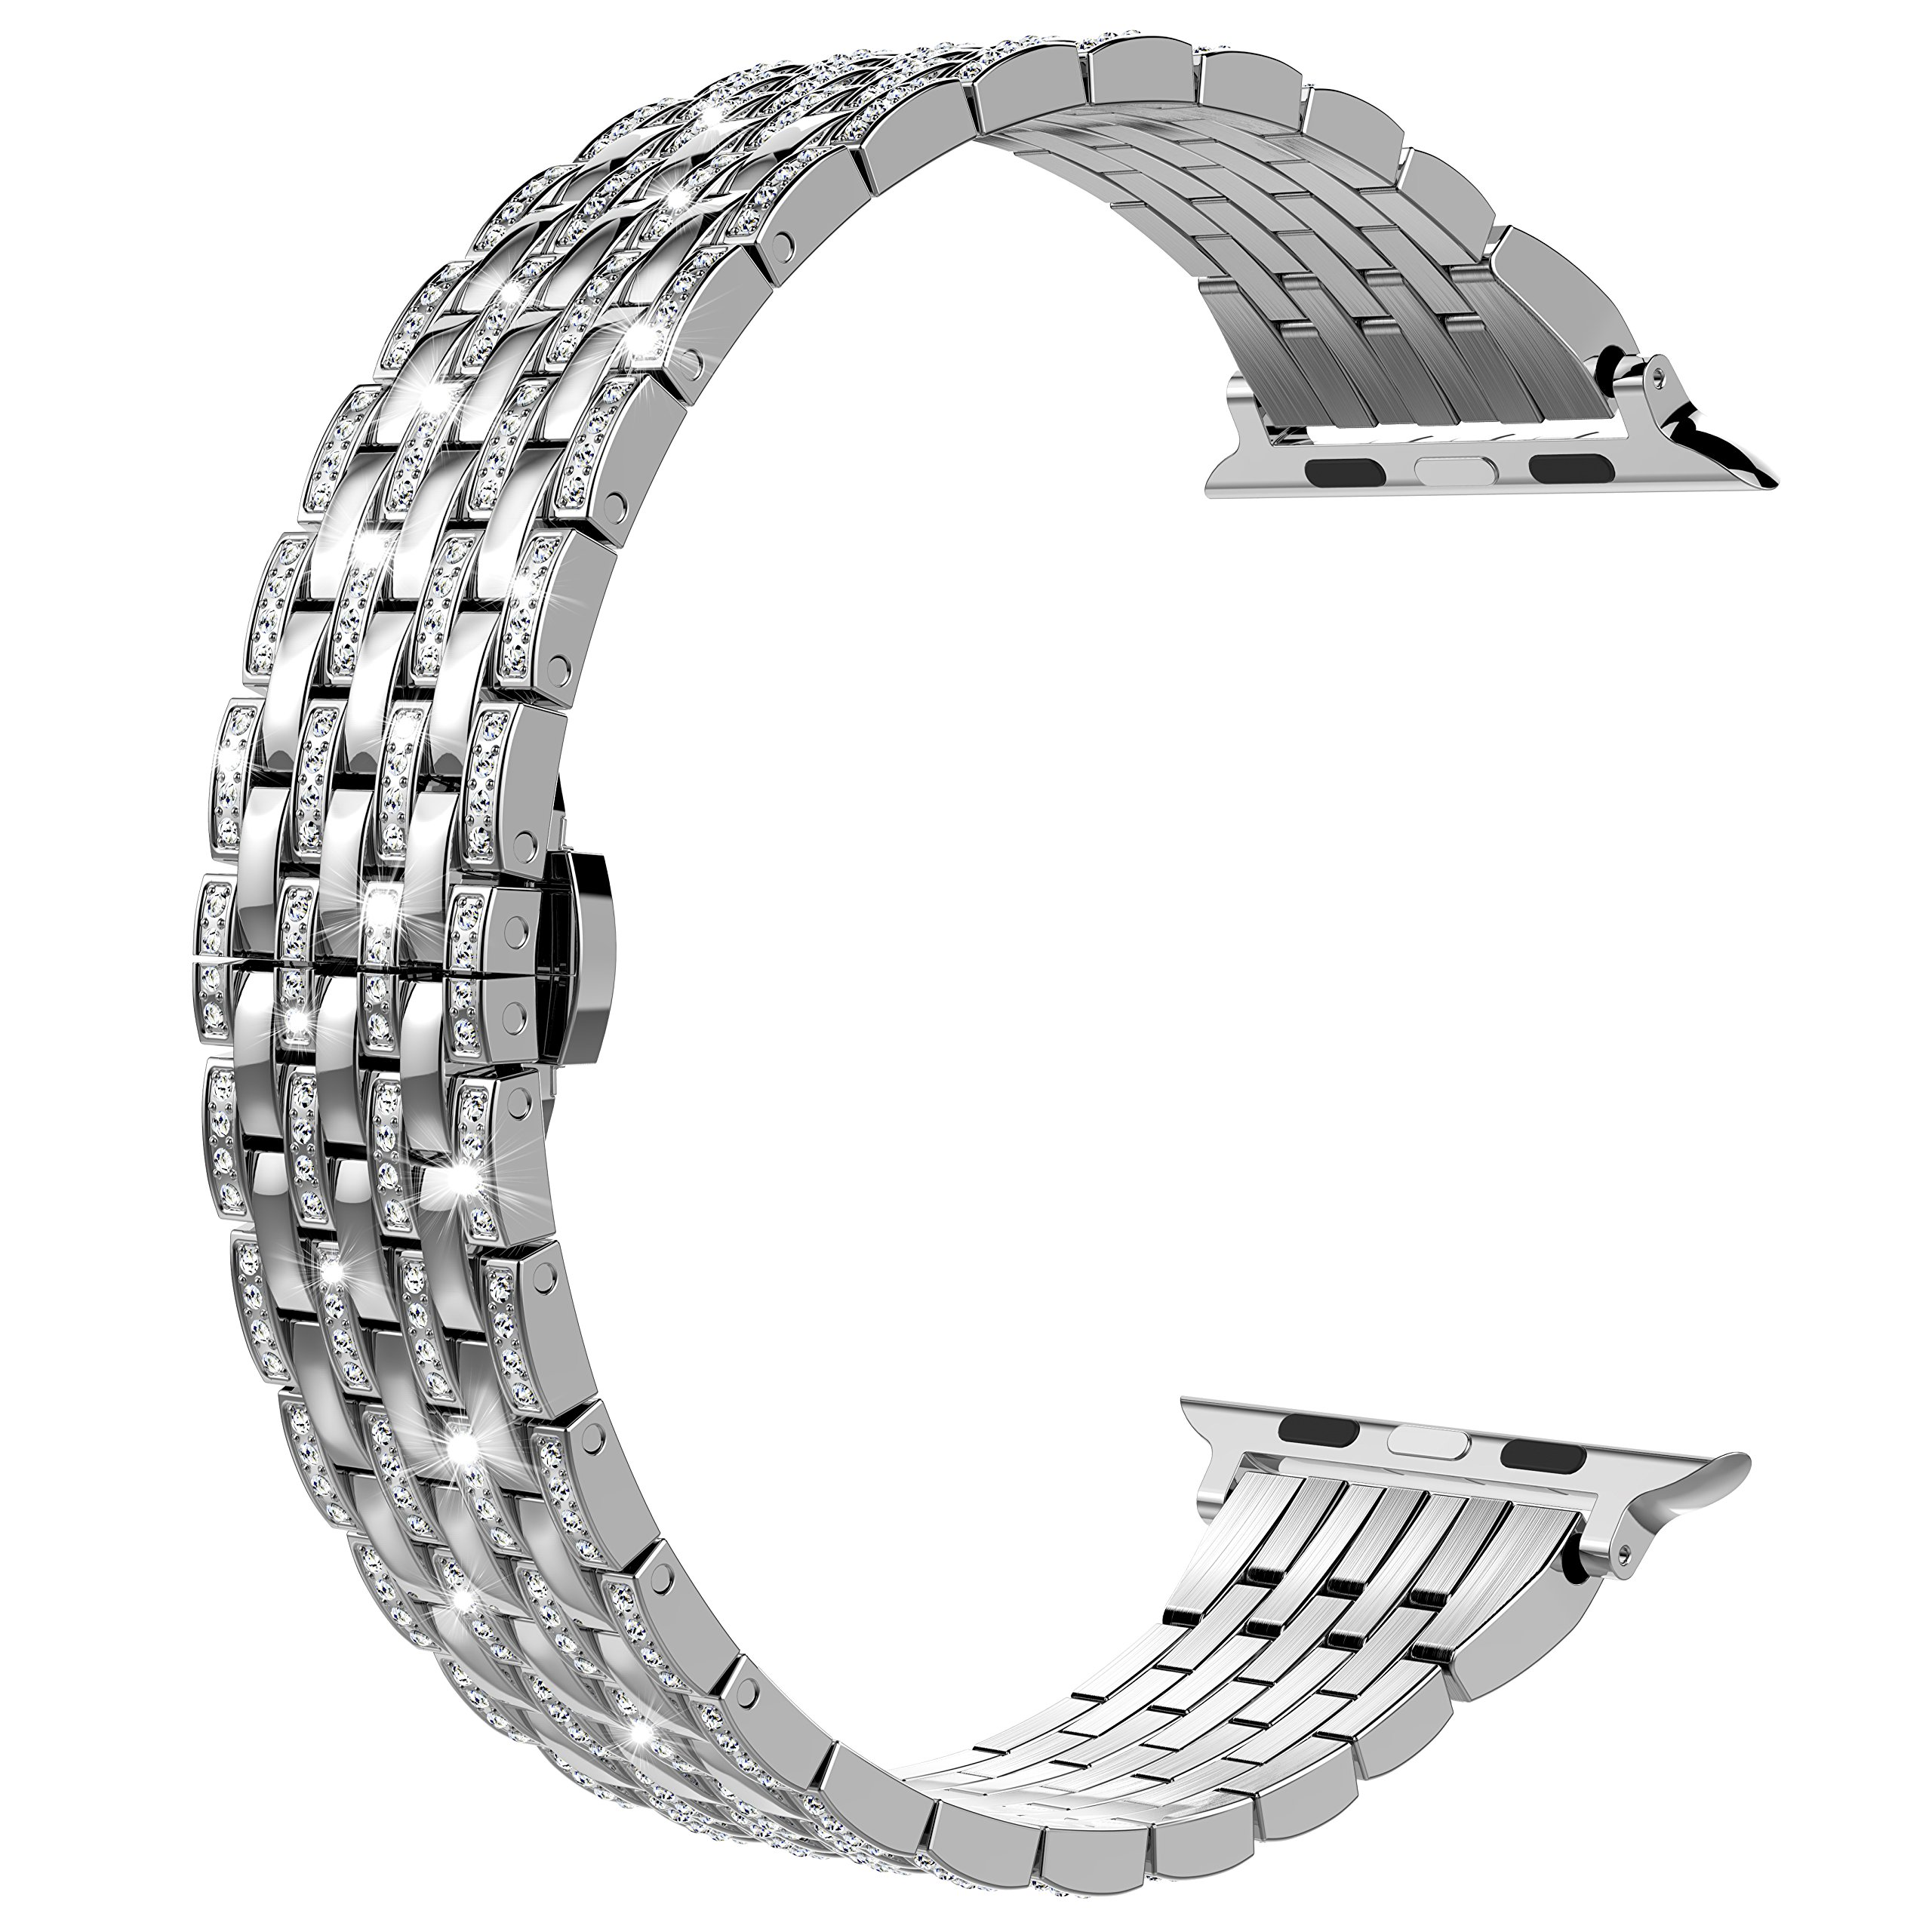 Wearlizer Silver Bling Compatible with Apple Watch Band 38mm 40mm Crystal Rhinestone for iWatch Luxury Stainless Steel Metal Diamond Bracelet Strap Wristband Replacement Series 4 3 2 1 Edition Sport by Wearlizer